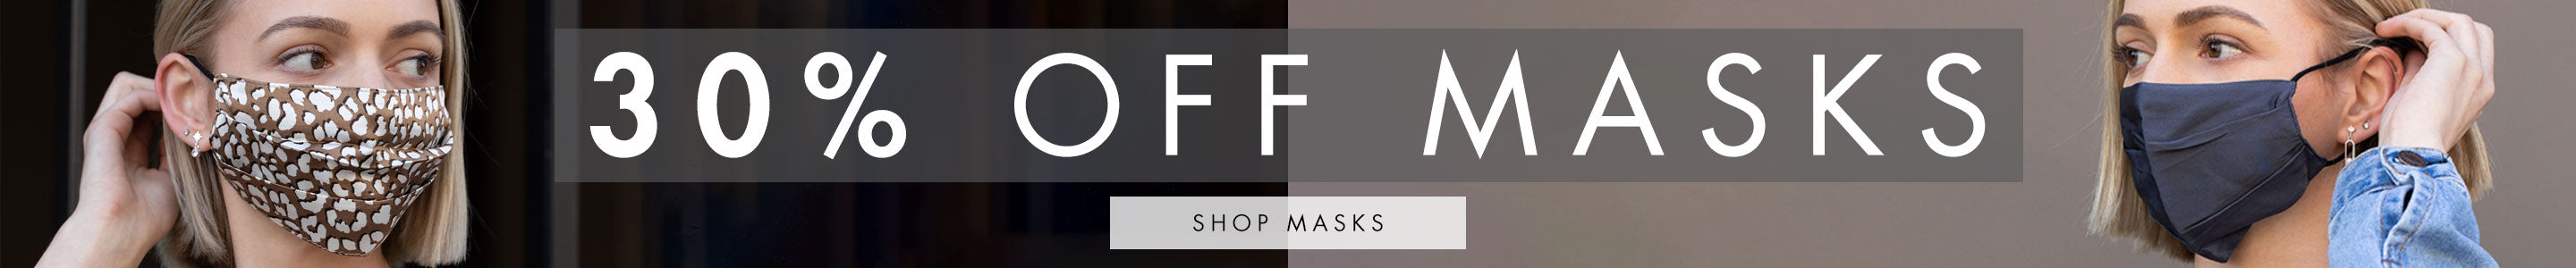 30% Off Masks